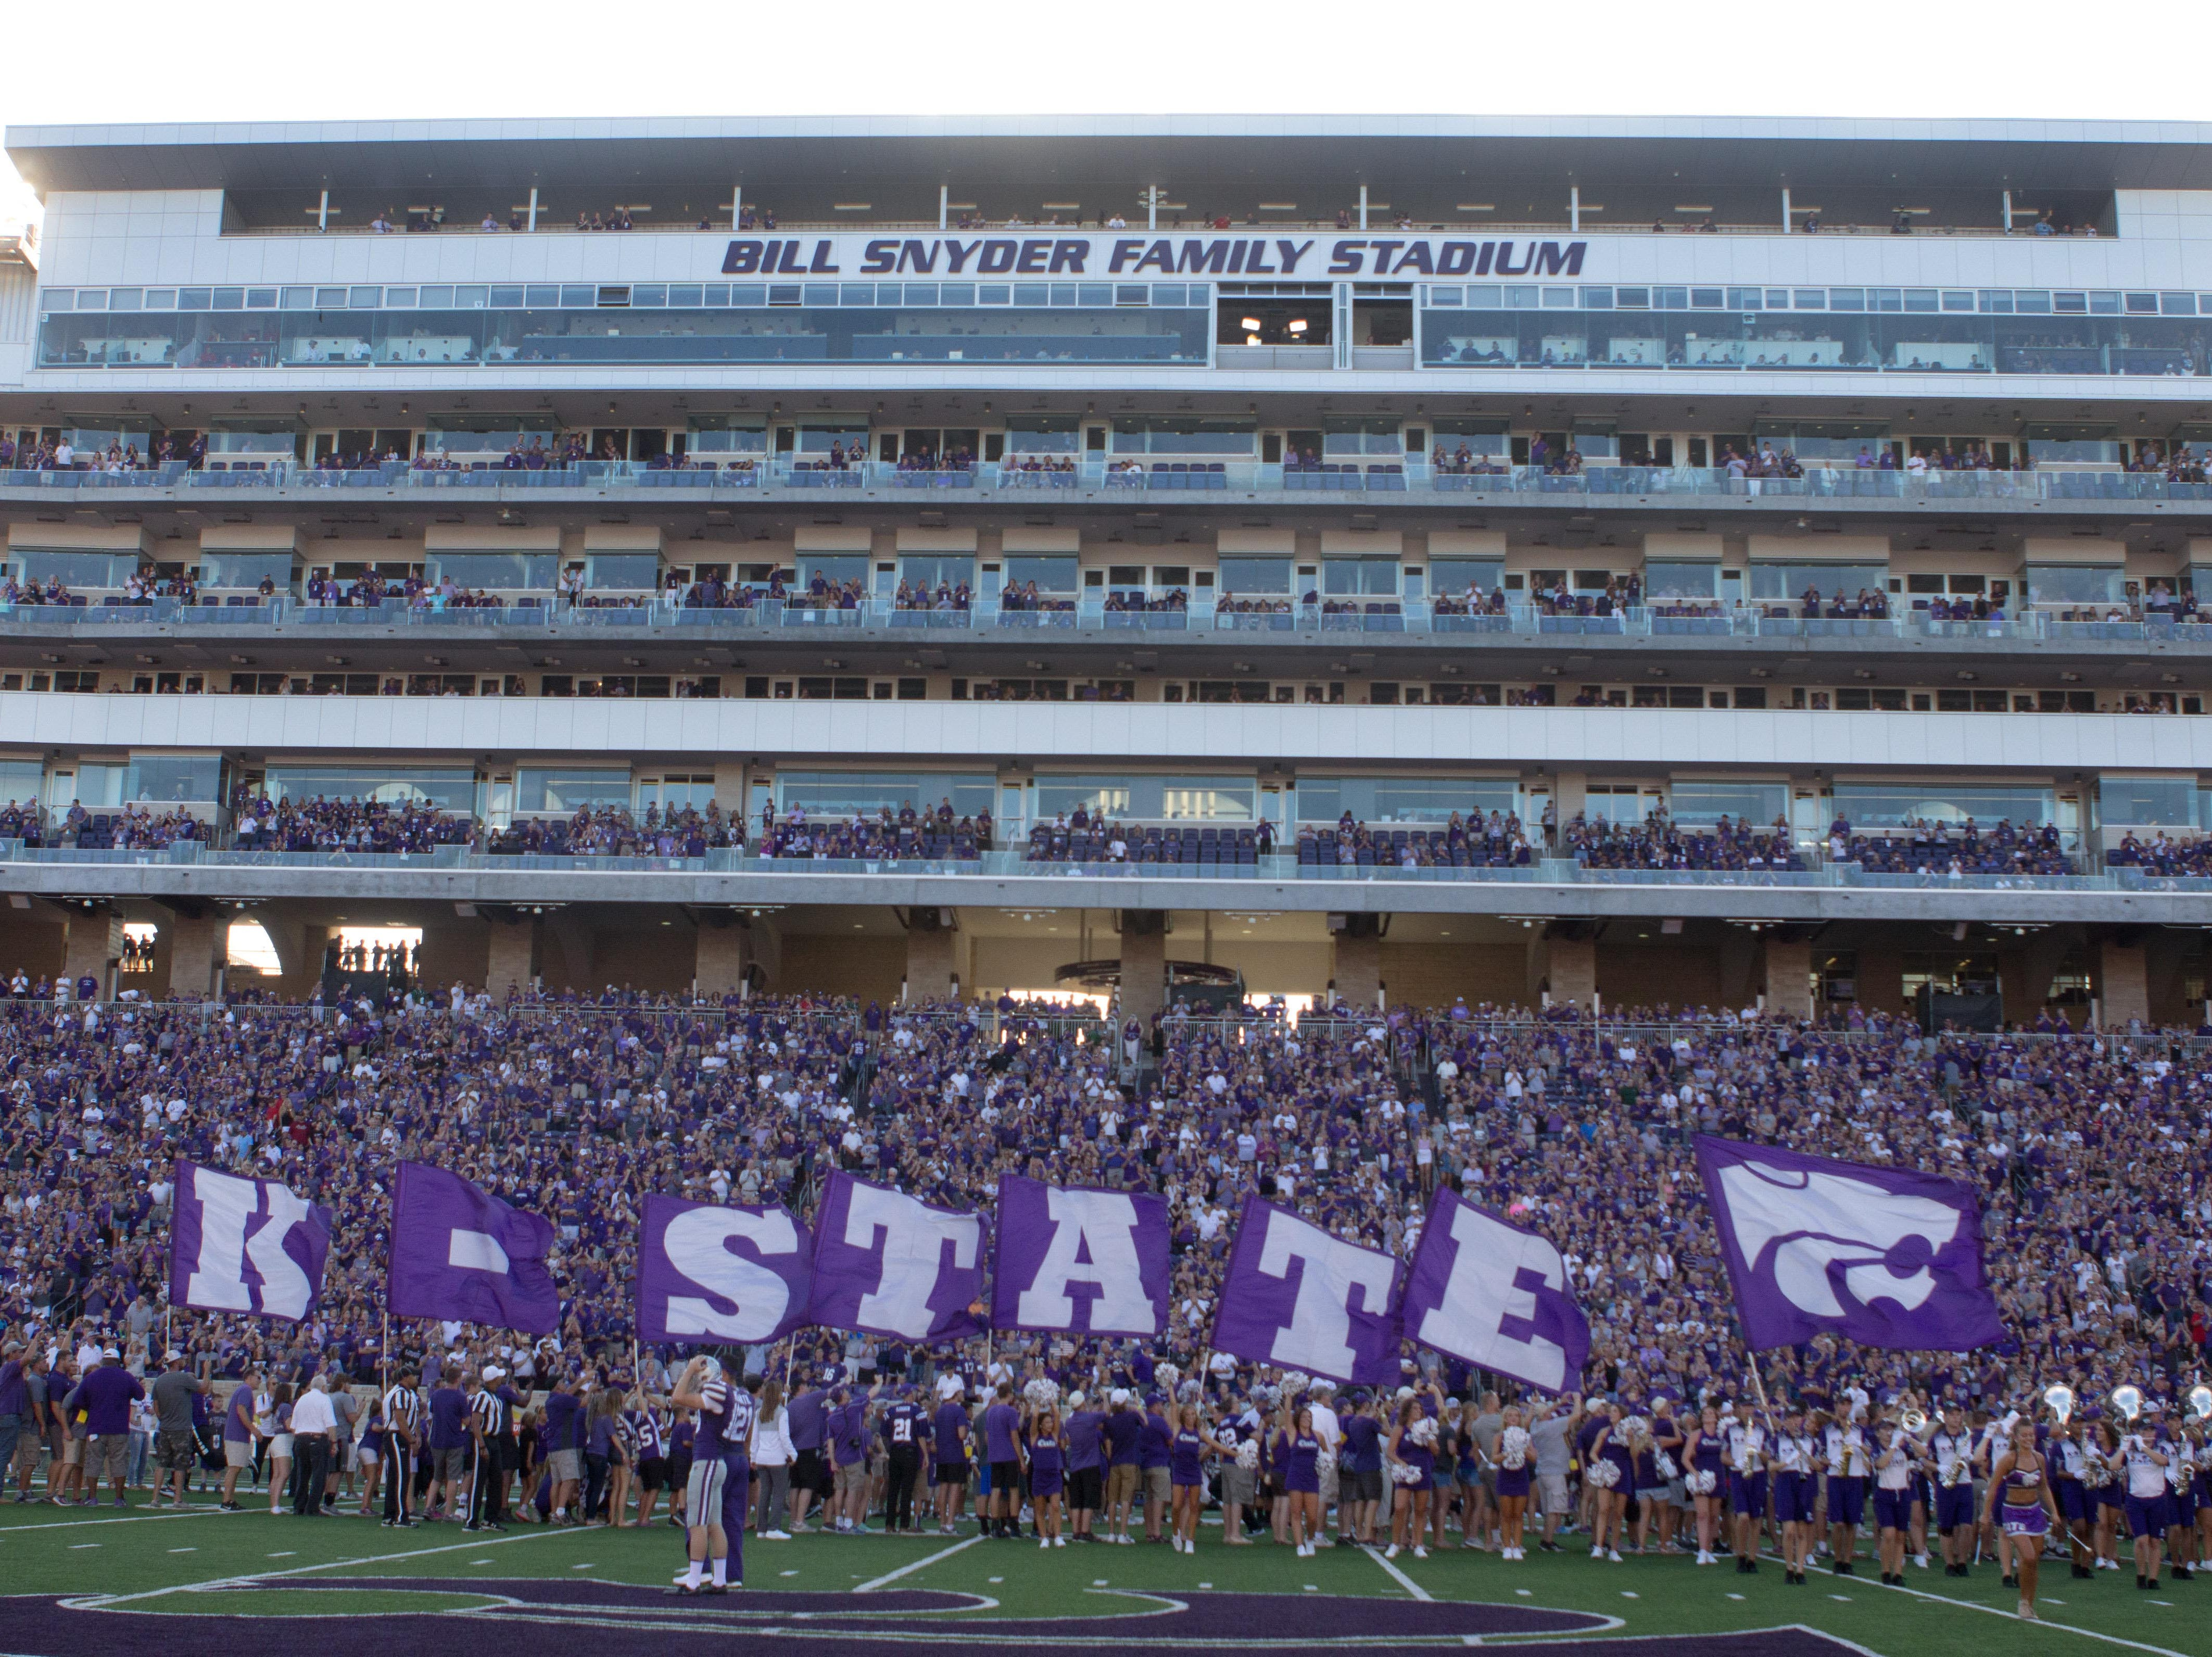 Sep 1, 2018; Manhattan, KS, USA; Kansas State Wildcats cheerleaders carry flags onto the field before a game between the Wildcats and the South Dakota Coyotes at Bill Snyder Family Stadium. Mandatory Credit: Scott Sewell-USA TODAY Sports